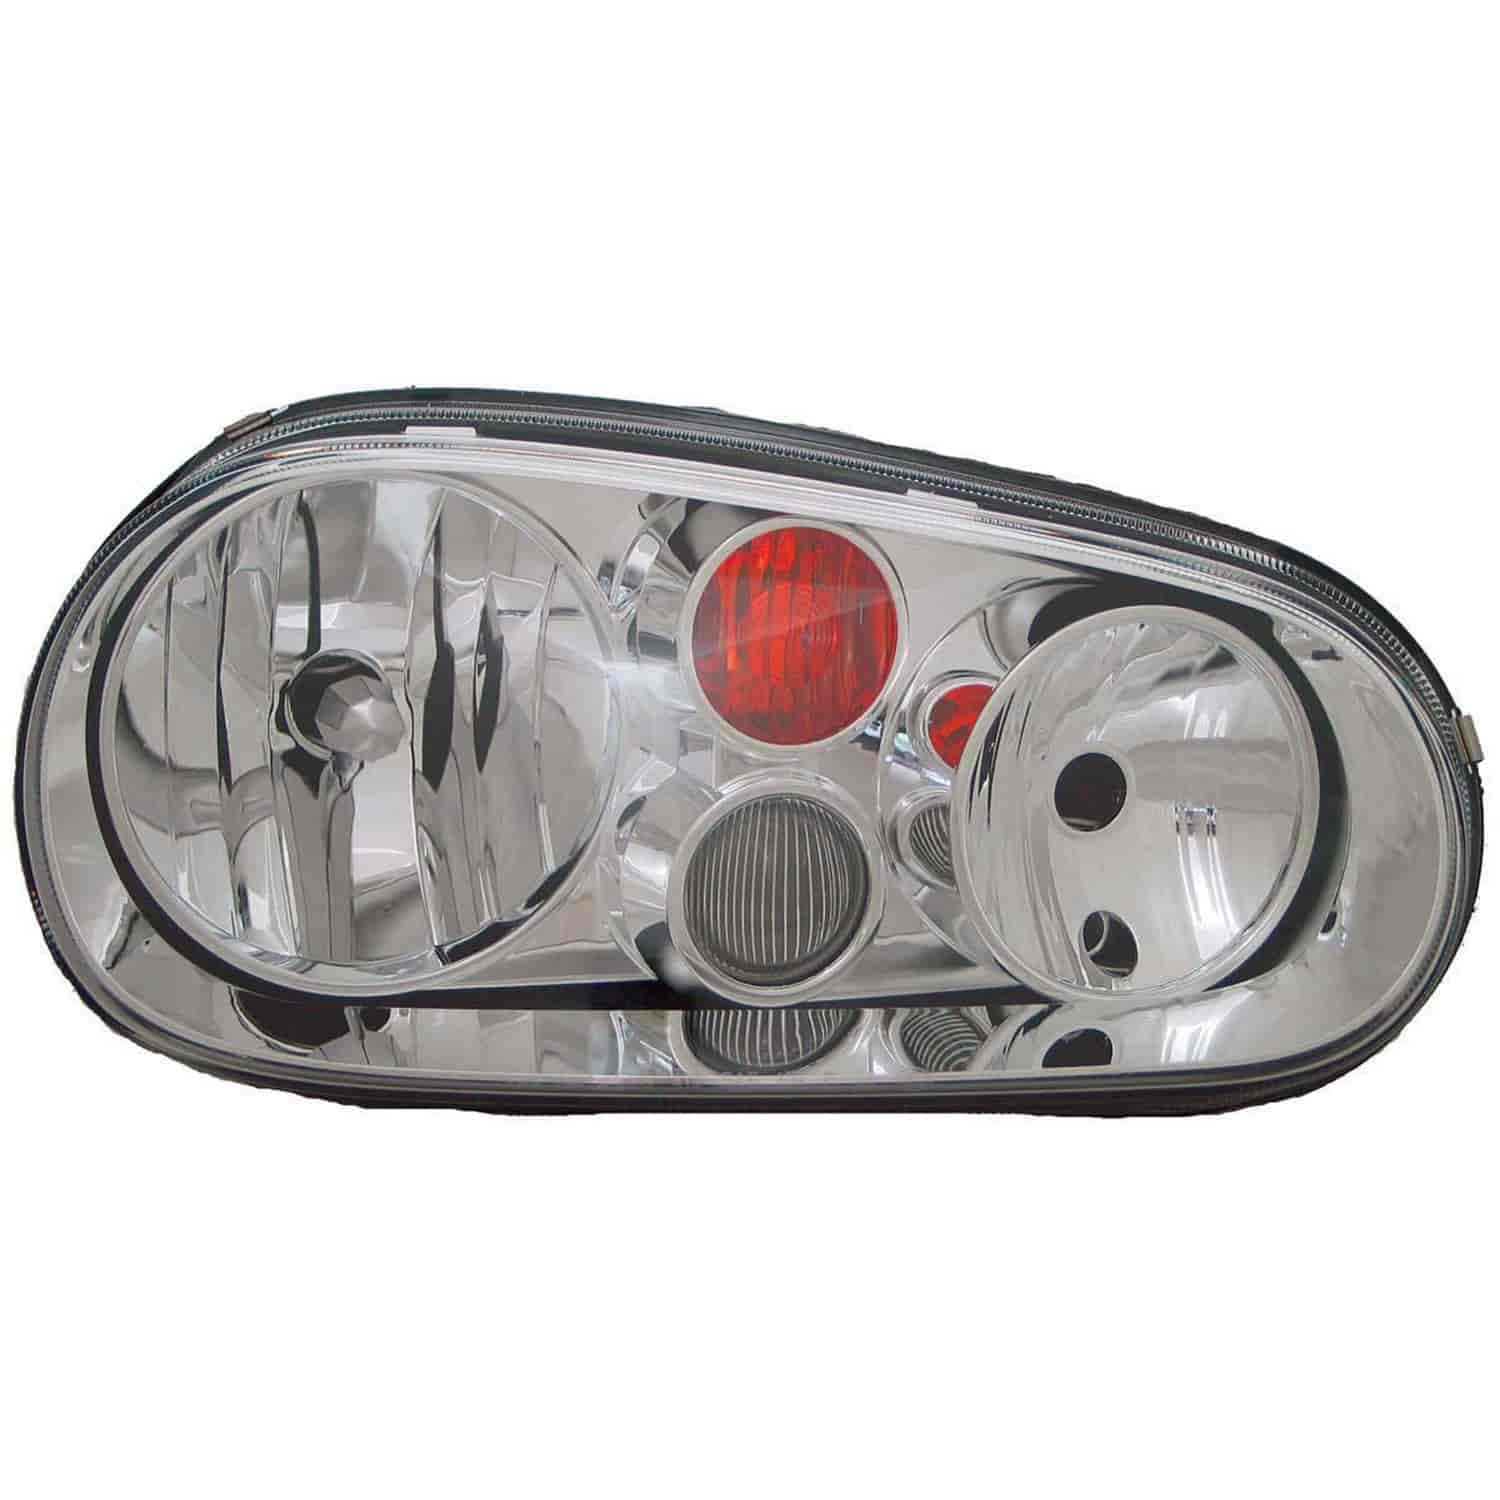 deals on kitchen cabinets jegs collision 20 6473 80 headlamp assembly jegs 6473